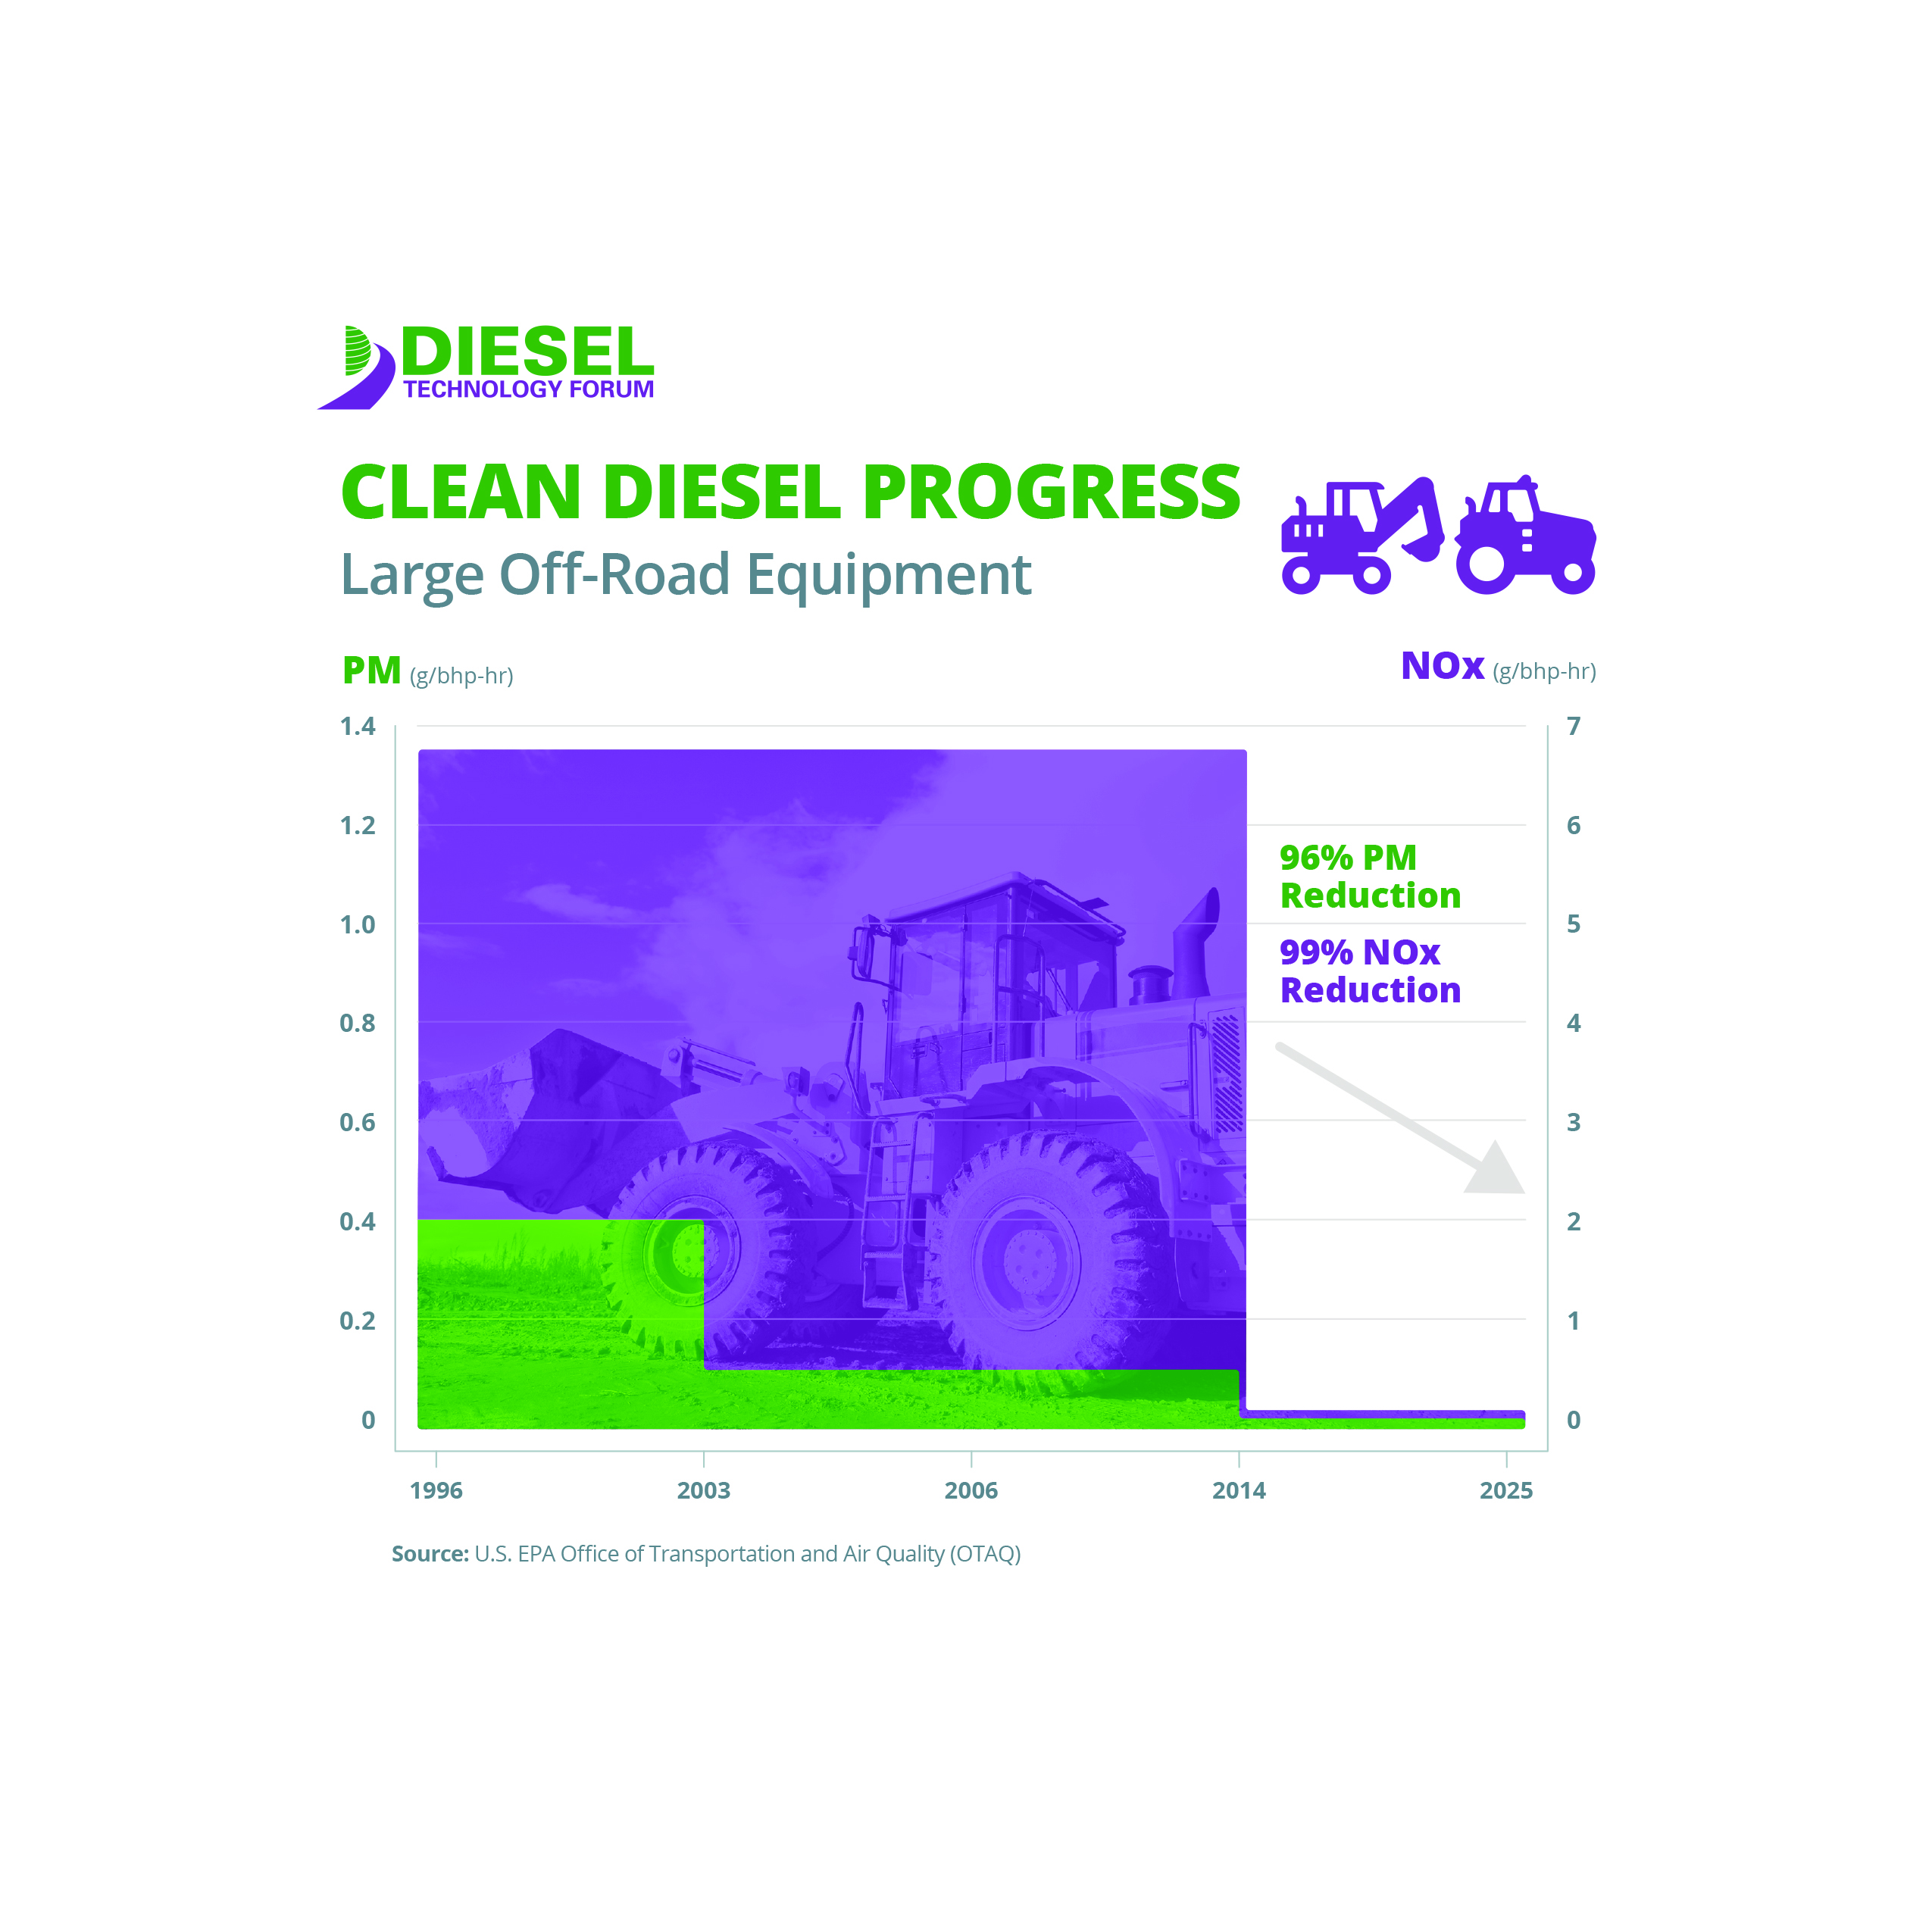 Clean Diesel Progress - Large Off-Road Equipment